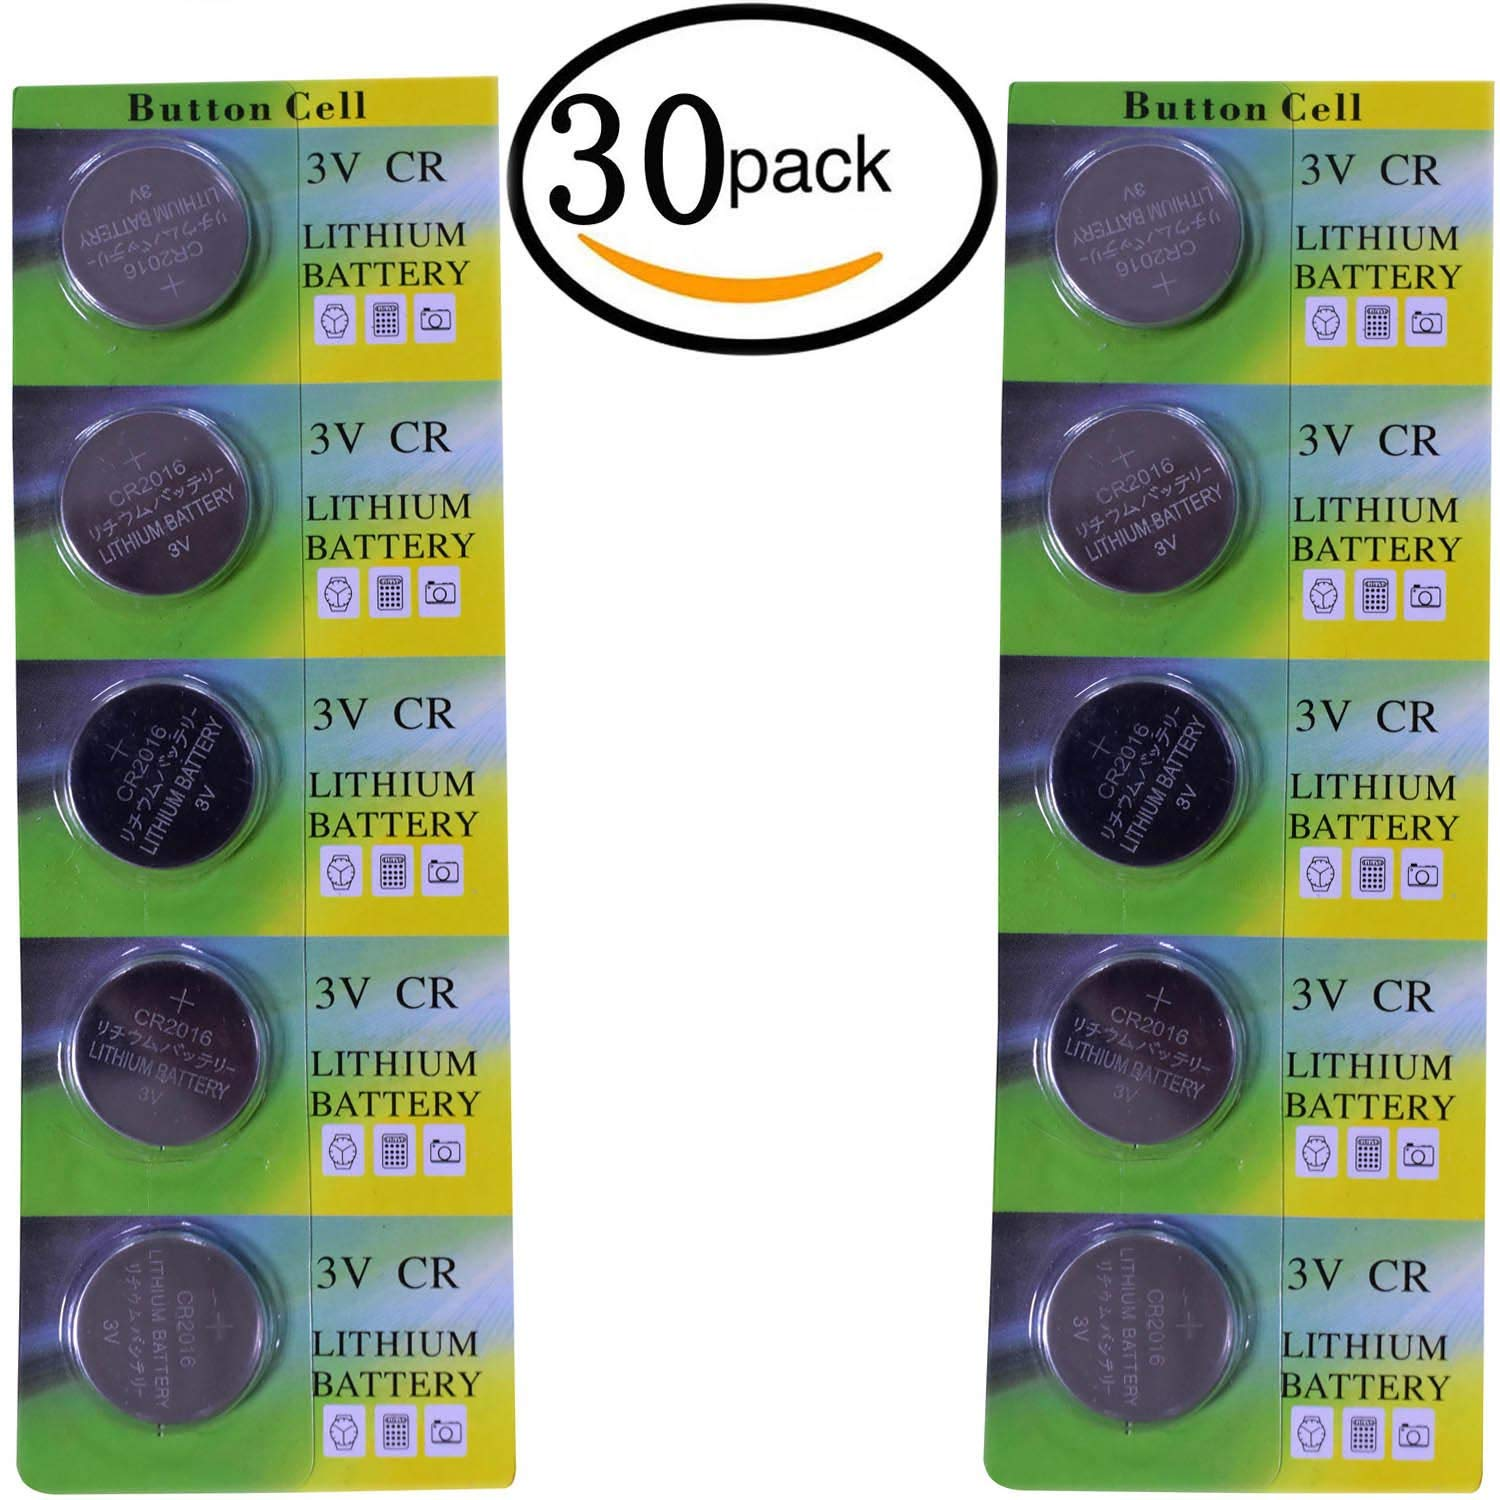 CR2016 Lithium 3V Coin Cell Battery CR 2016 Batteries 3 Volt Button Cell Lithium for Toys Calculators Watches Used in Most Electronic Devices (30 Pack)